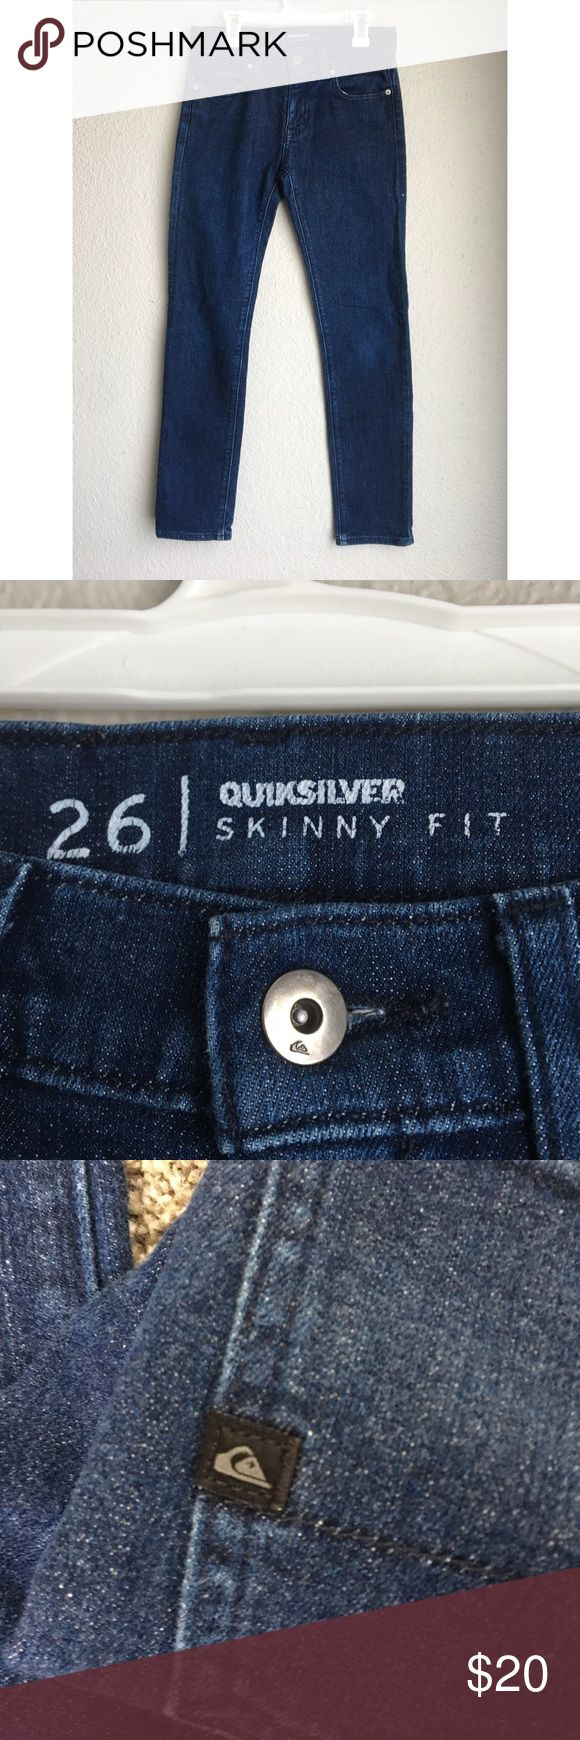 Quiksilver Womens Skinny Dark Wash Mid Rise Jeans Quiksilver Womens Skinny Fit Dark Wash Mid Rise Jeans Size 26 Preowned. Jeans have some discoloration, they have been loved. Willing to let go for a reasonable price.Very skinny. Quiksilver Jeans Skinny